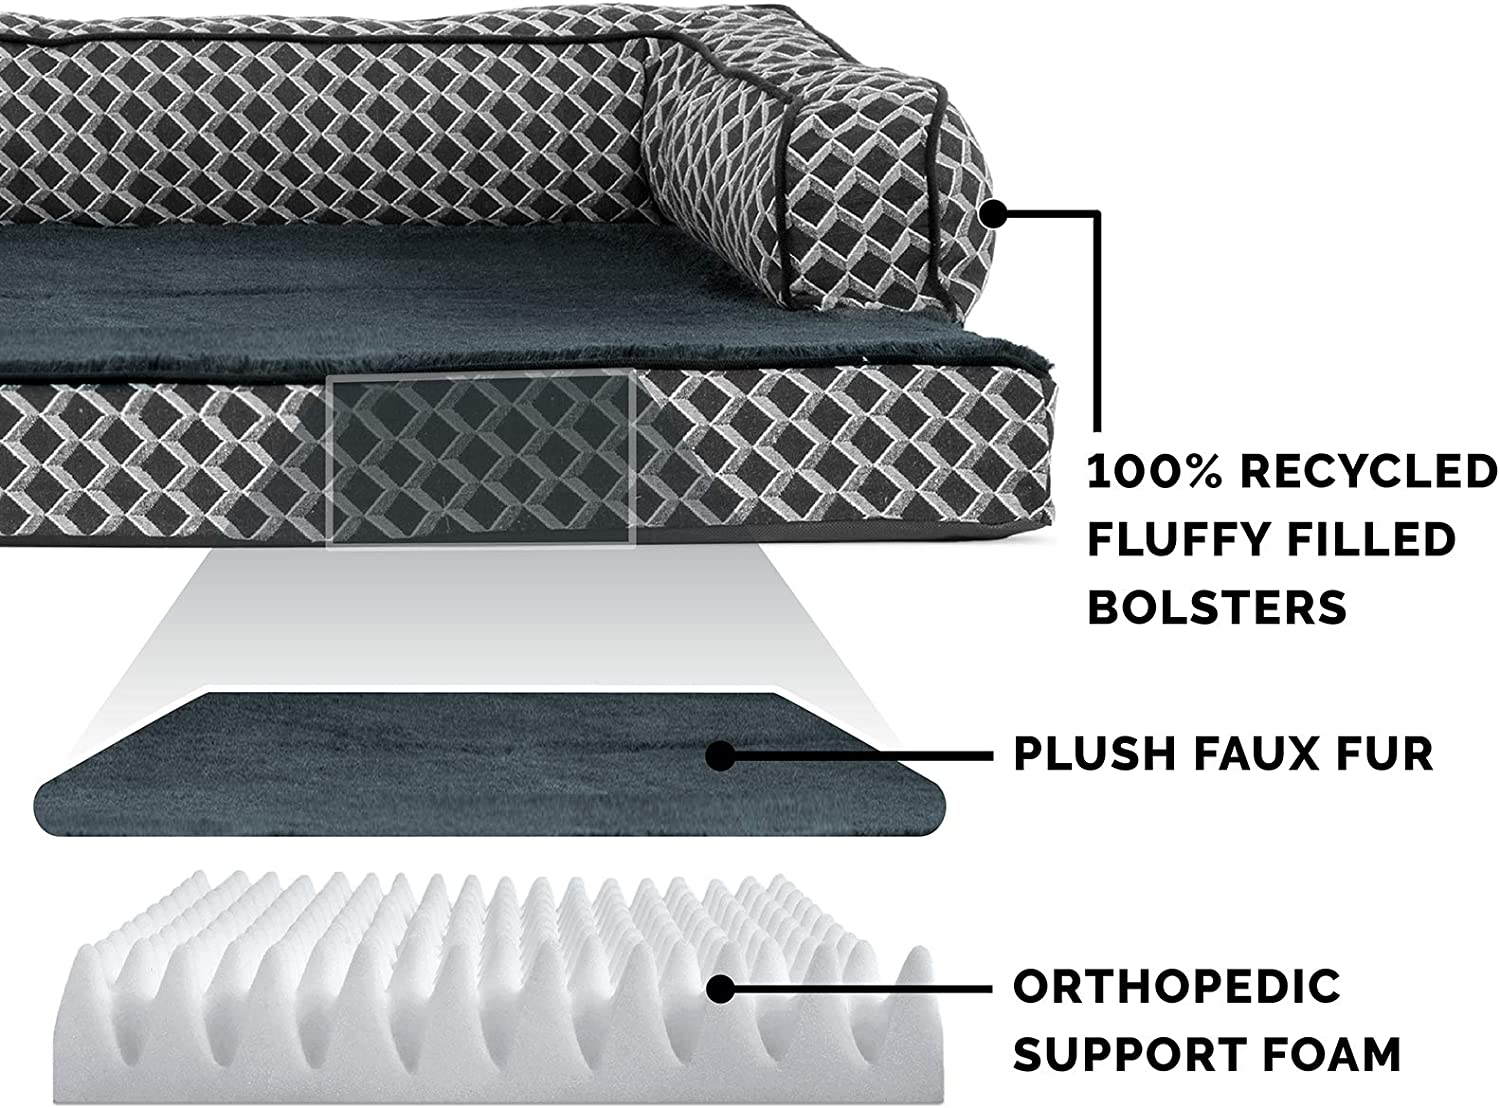 Furhaven Pet Dog Bed - Orthopedic Plush Faux Fur and Décor Comfy Couch Traditional Sofa-Style Living Room Couch Pet Bed with Removable Cover for Dogs and Cats, Diamond Gray, Jumbo : Pet Supplies